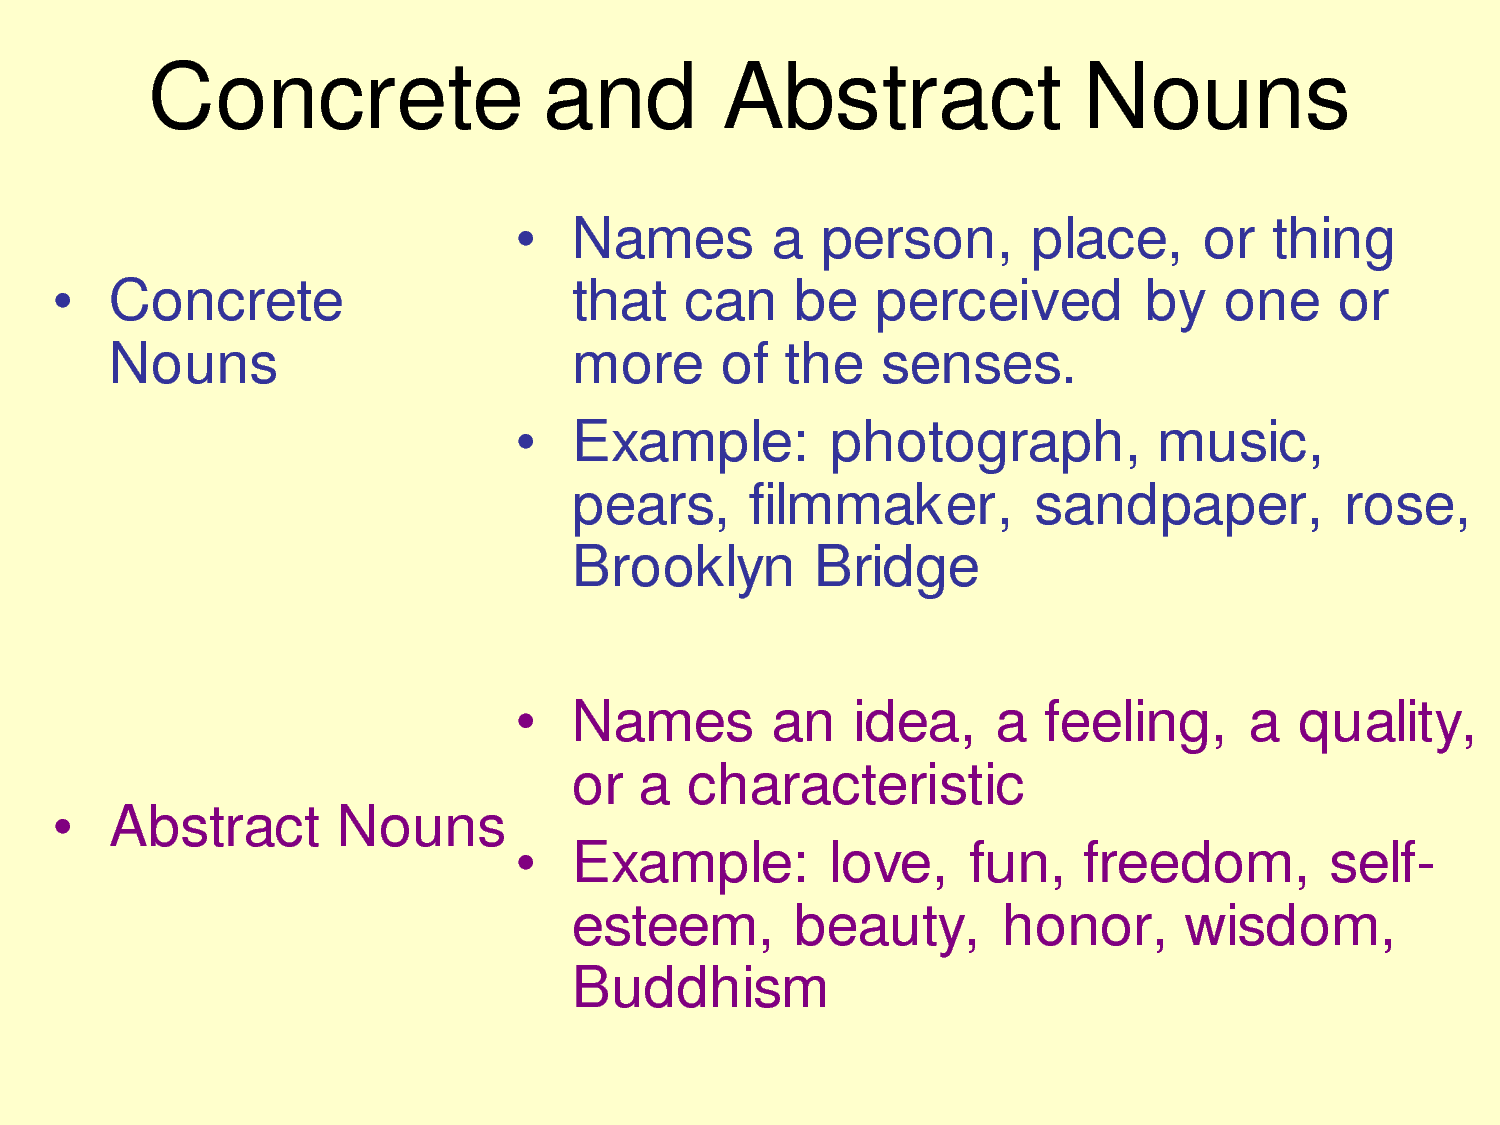 Concrete Nouns With Images To Share